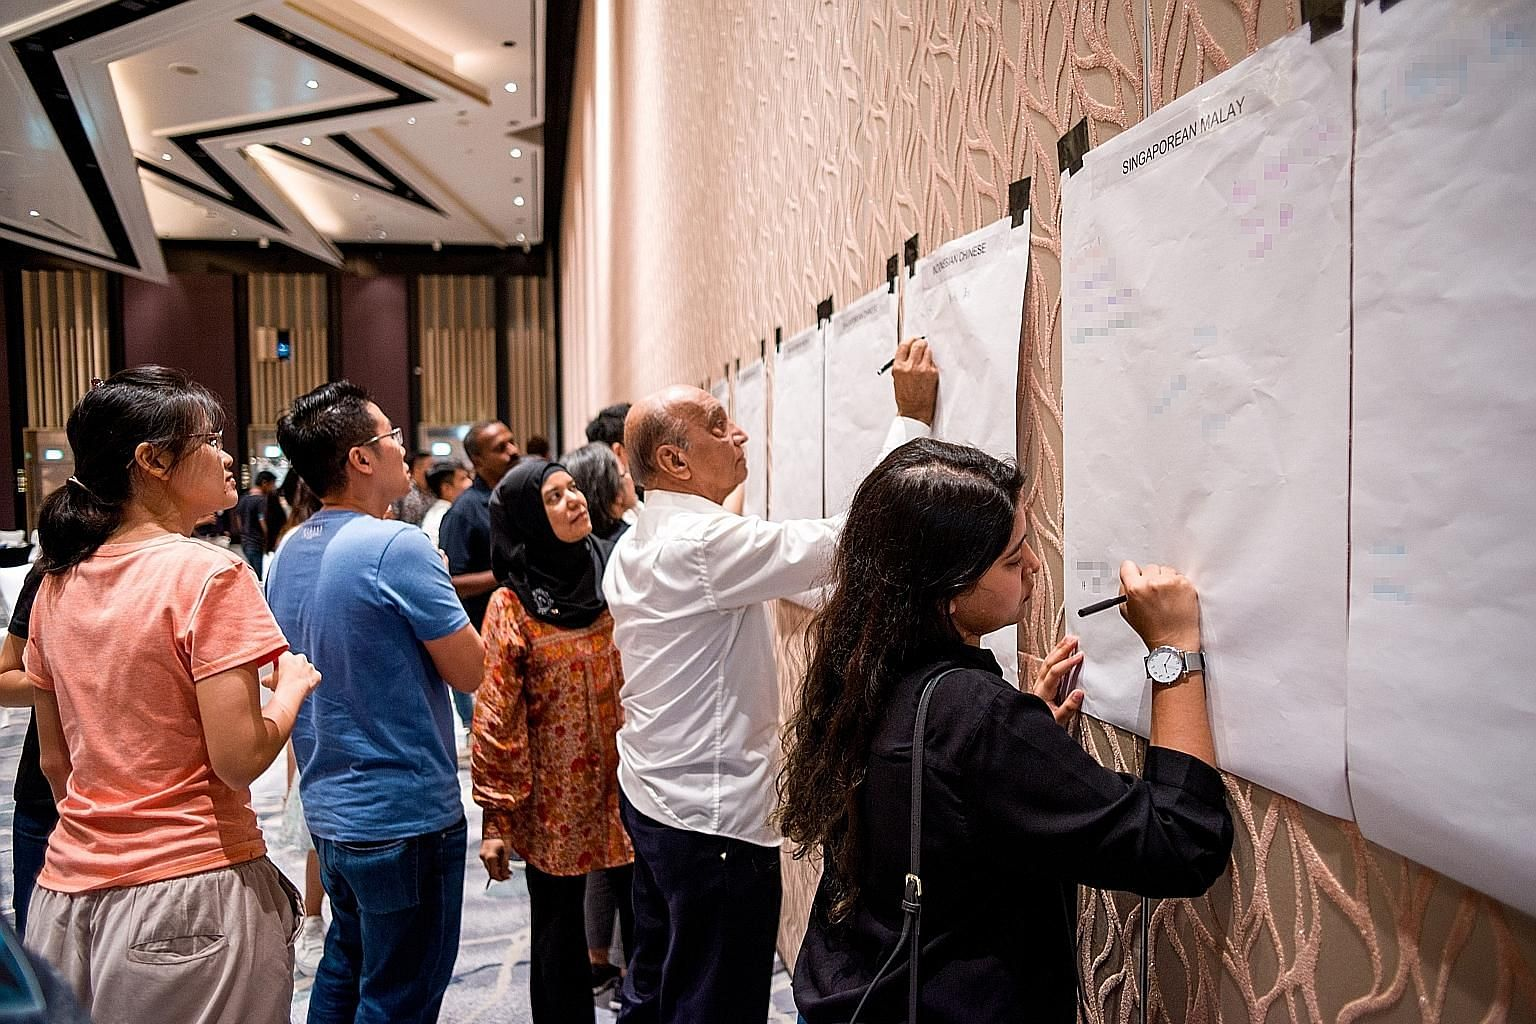 Participants at yesterday's workshop scribbling down the biased notions that they have heard about certain groups of people. PHOTO: ONEPEOPLE.SG